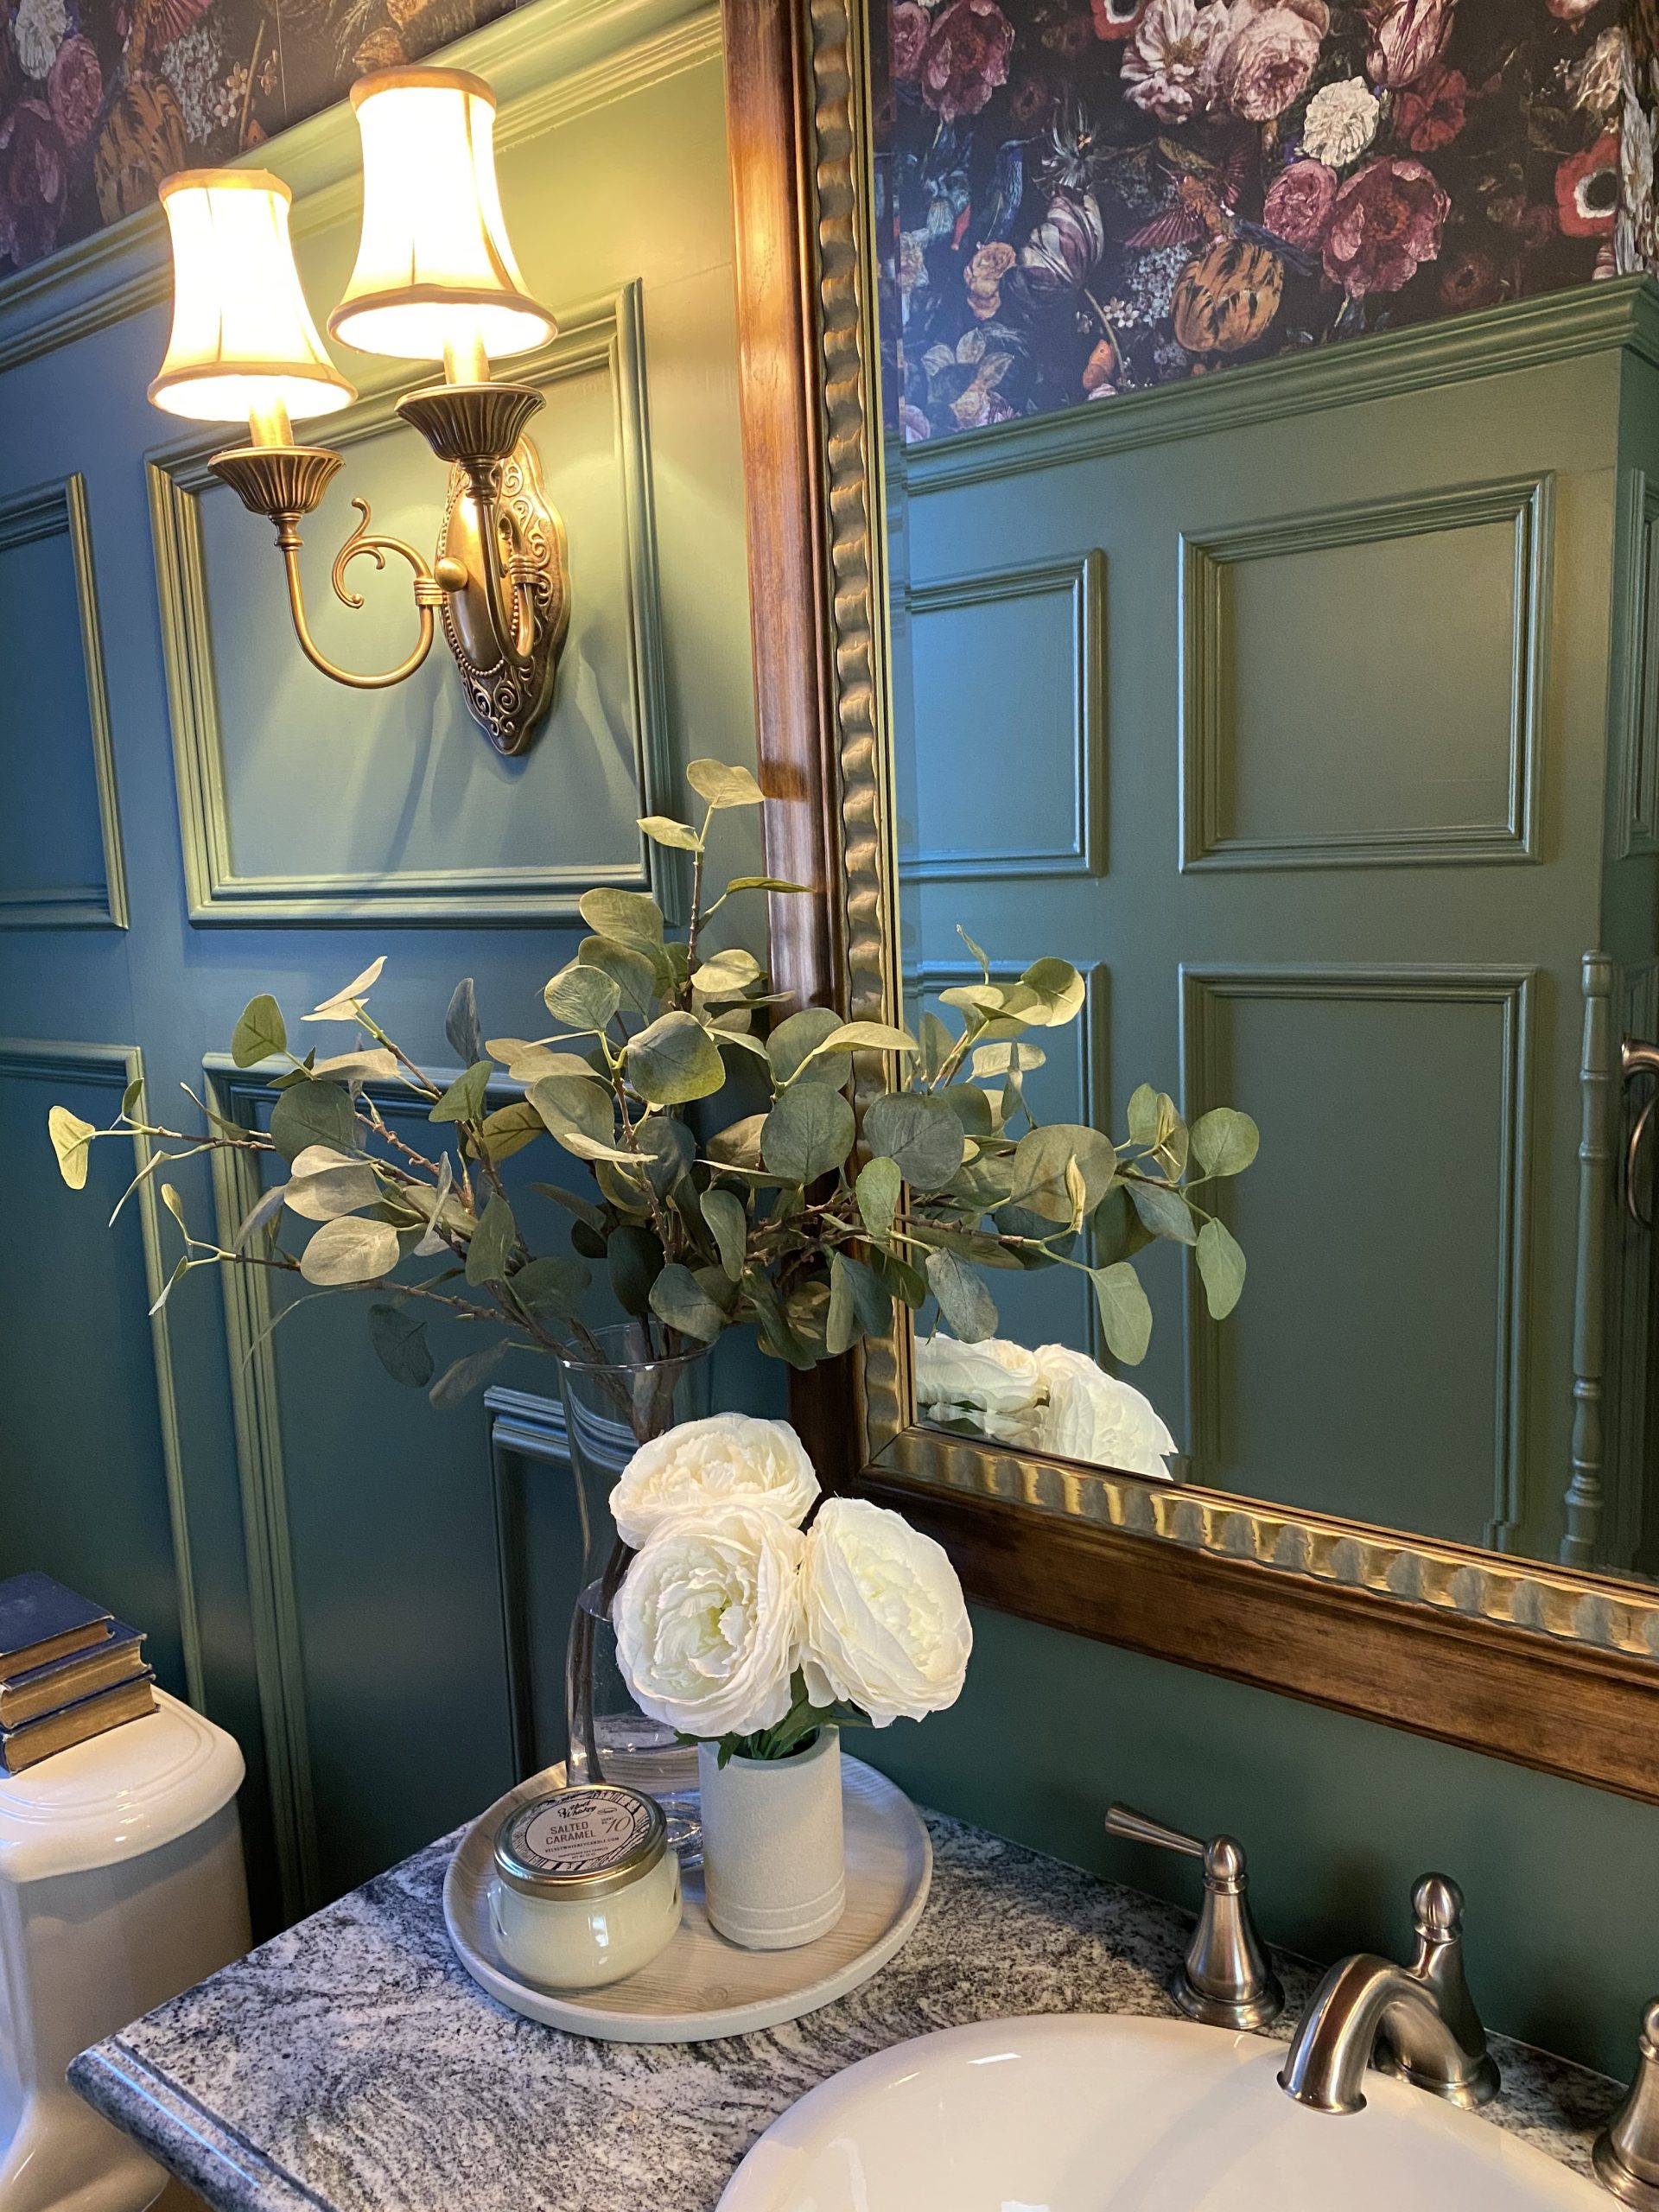 The small details that make this powder room design ultra luxe